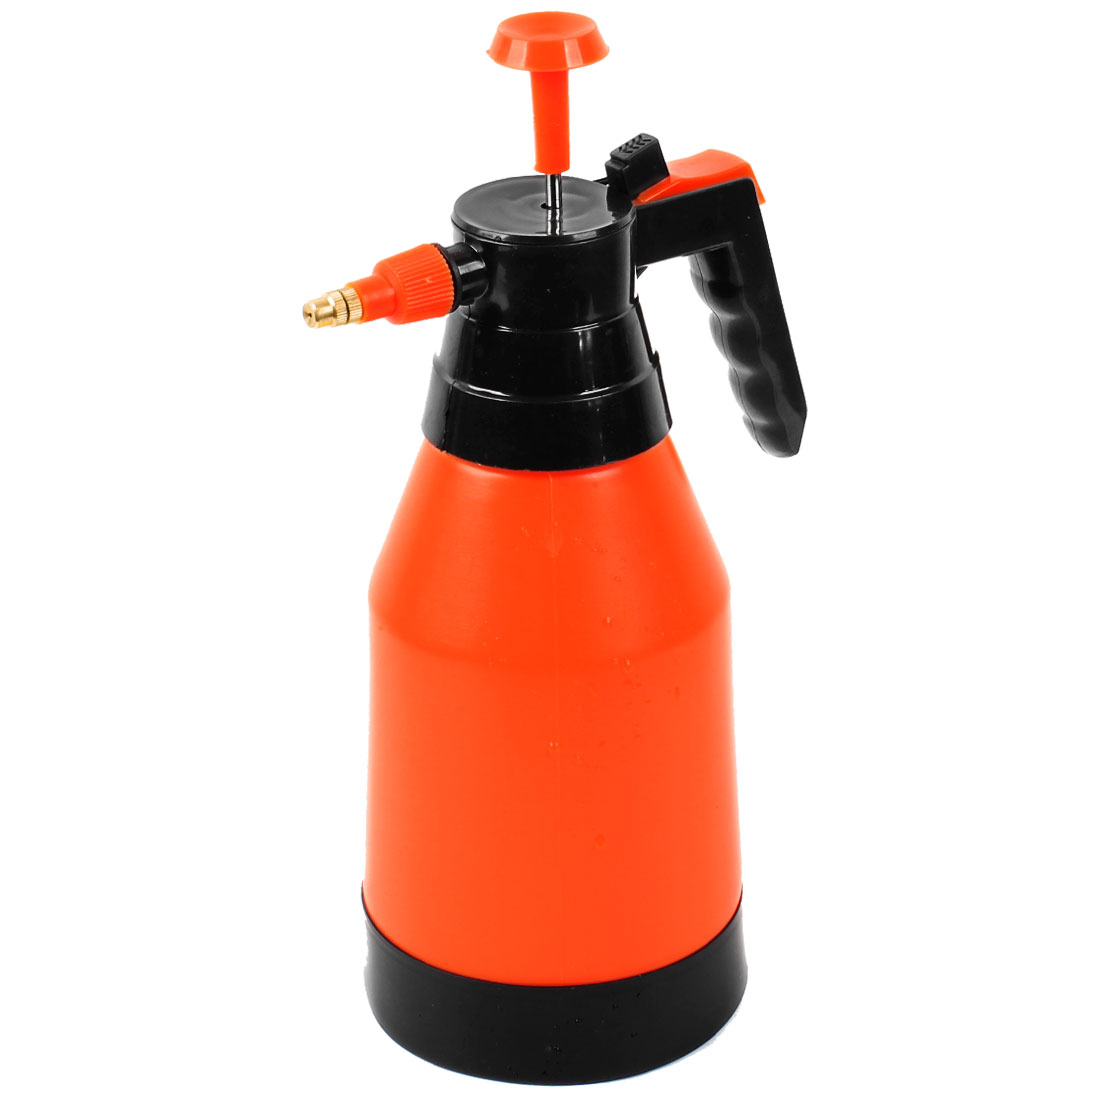 1.5L Capacity Chemical Sprayer Garden Plant Water Spray Bottle Black Red